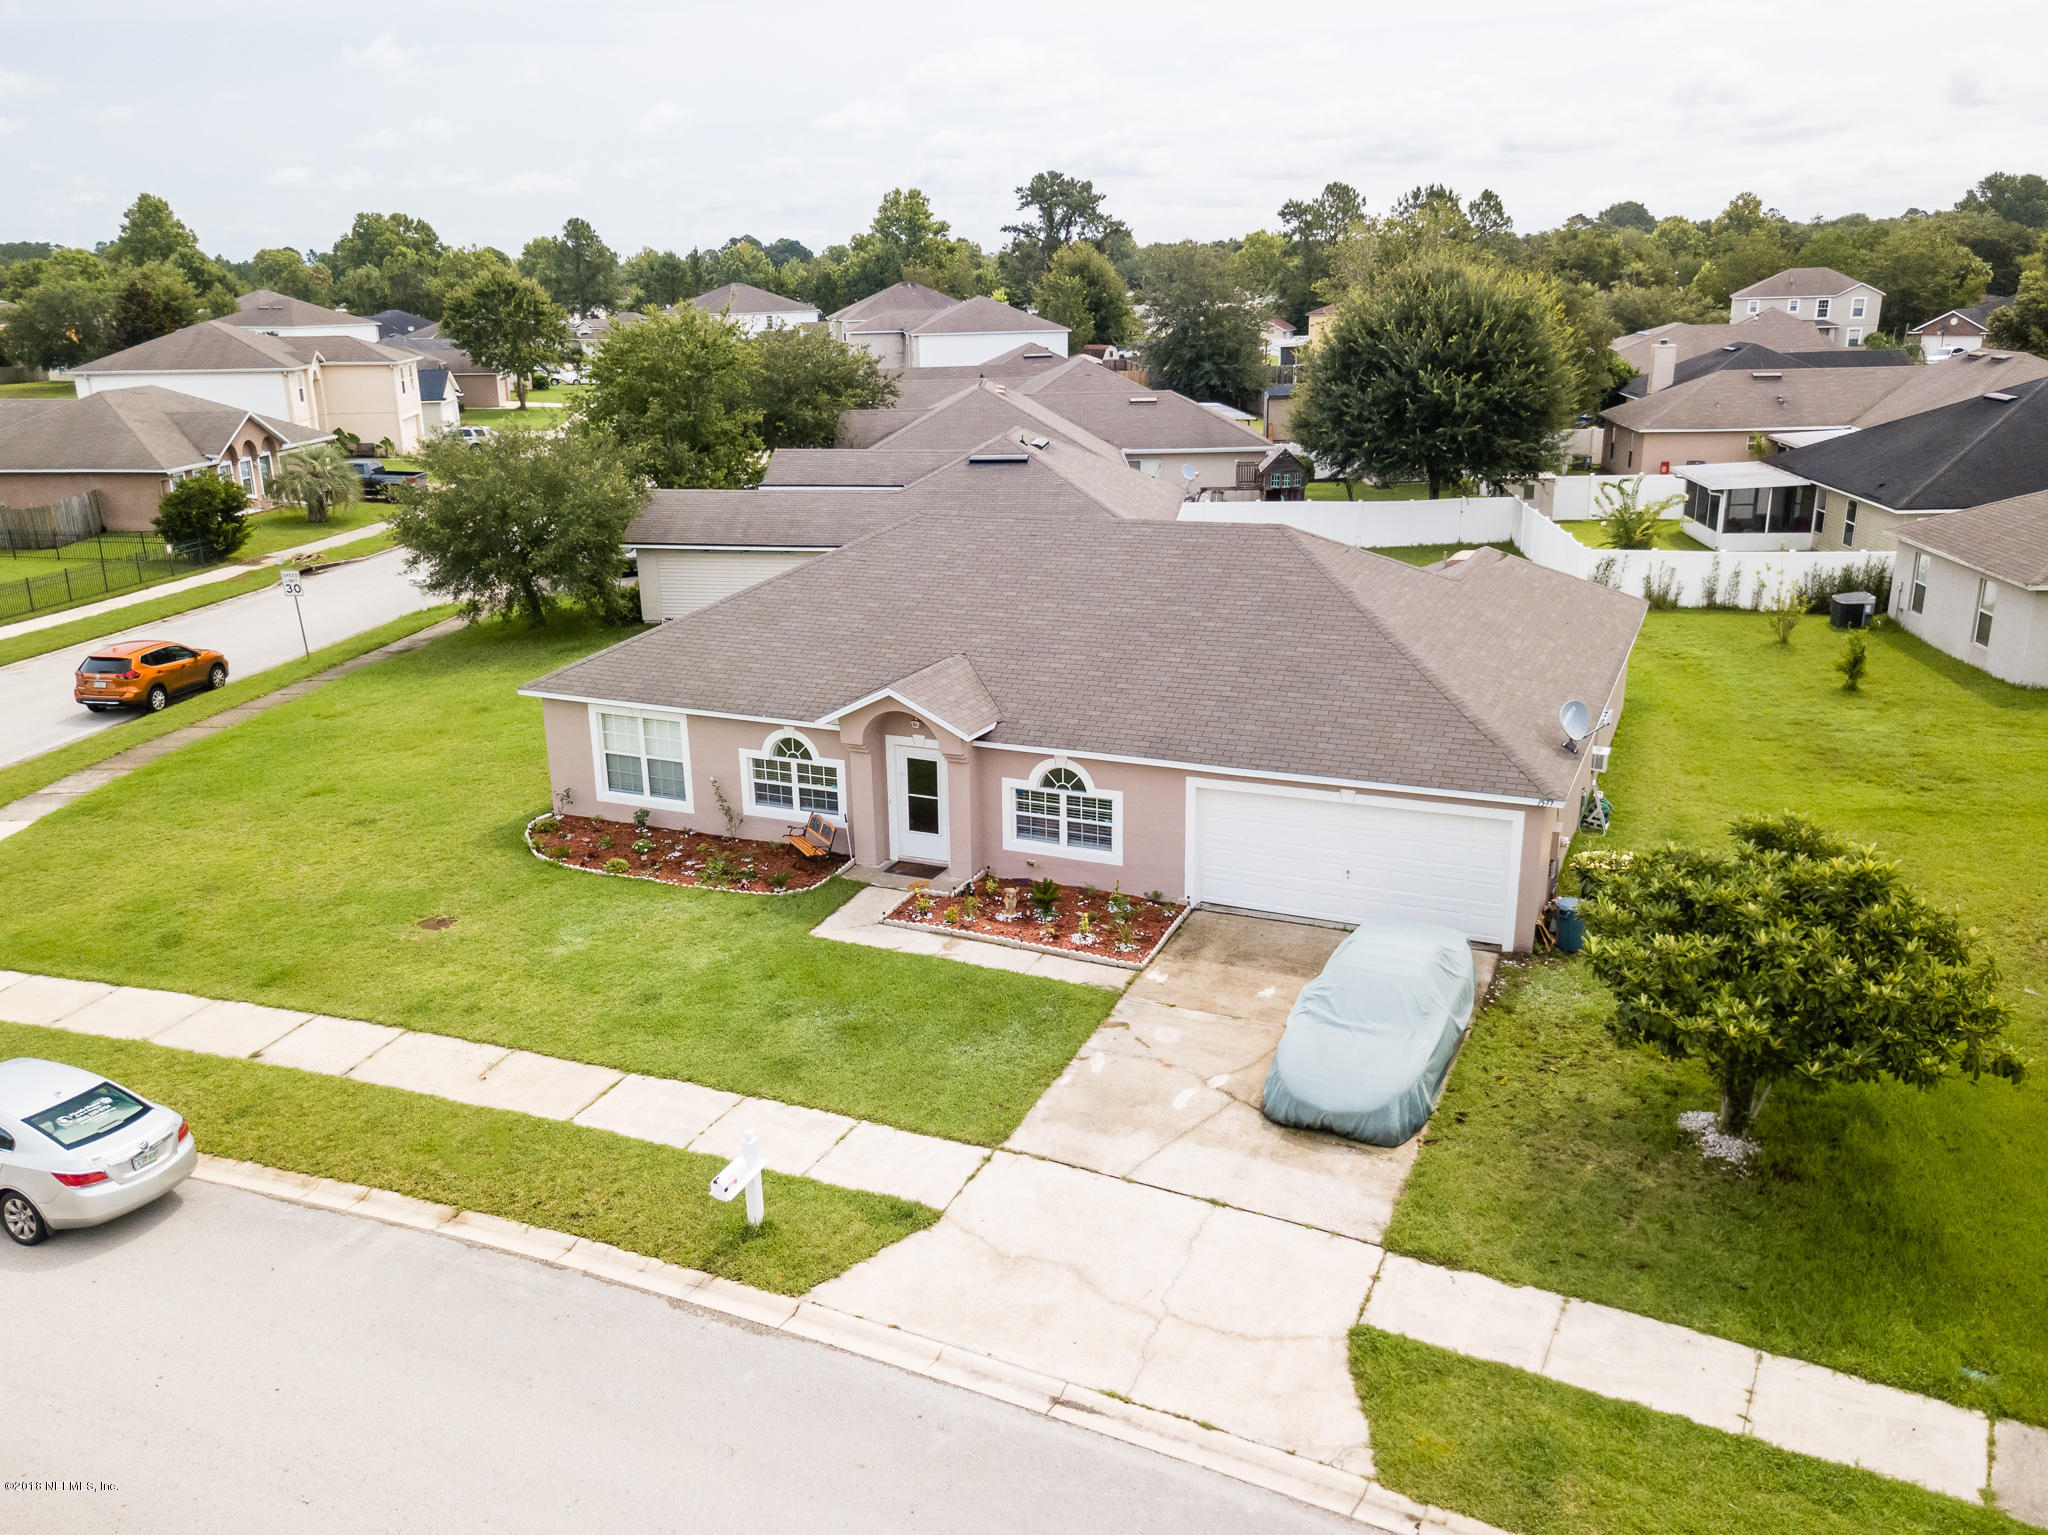 1577 GUARDIAN, JACKSONVILLE, FLORIDA 32221, 3 Bedrooms Bedrooms, ,2 BathroomsBathrooms,Residential - single family,For sale,GUARDIAN,943530